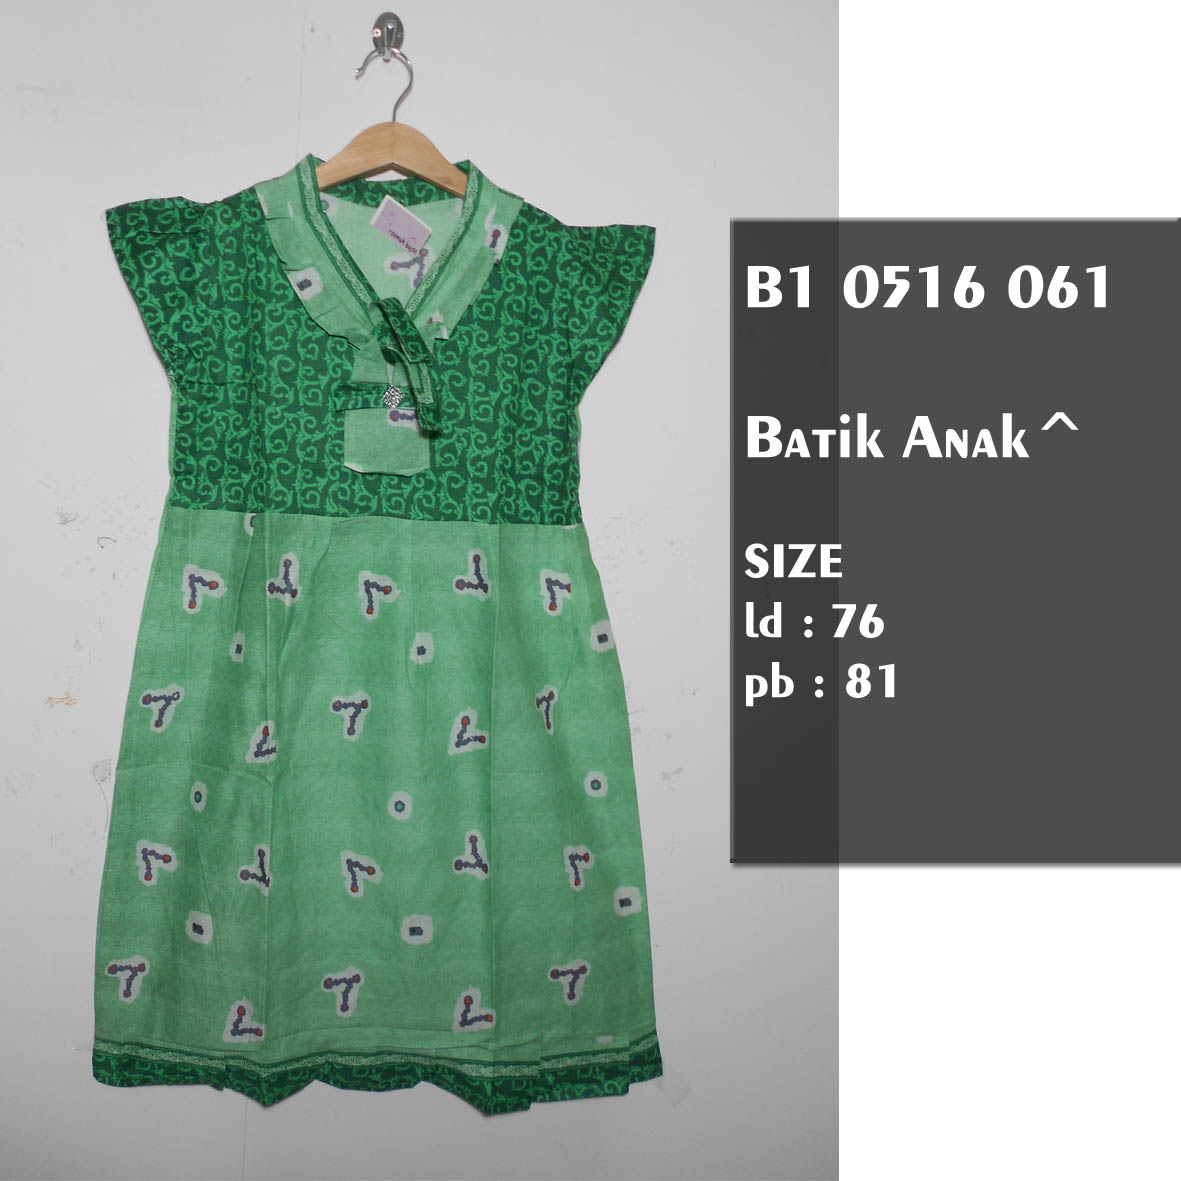 Jual Dress Batik Anak Usia 7 8 9 Sekdress Anak Murah Dress